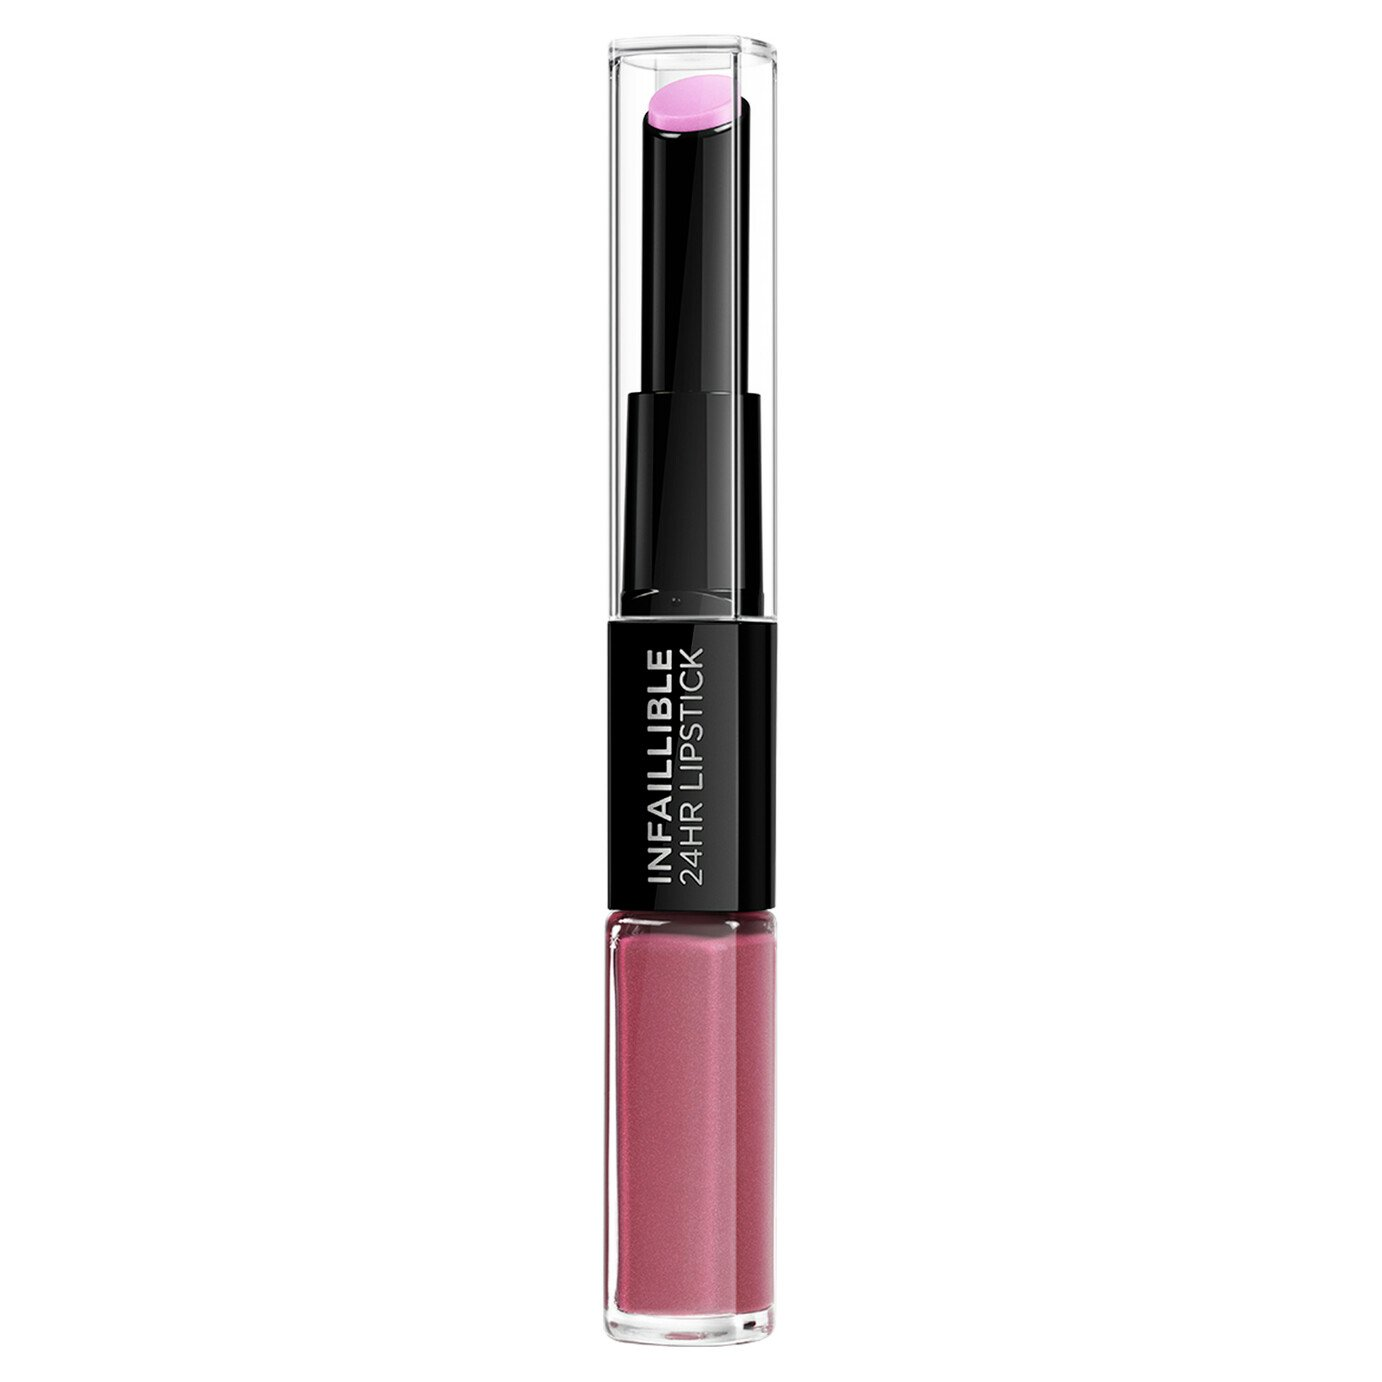 L'Oreal Paris Infallible 24HR Lipstick - Wandering Wil 218